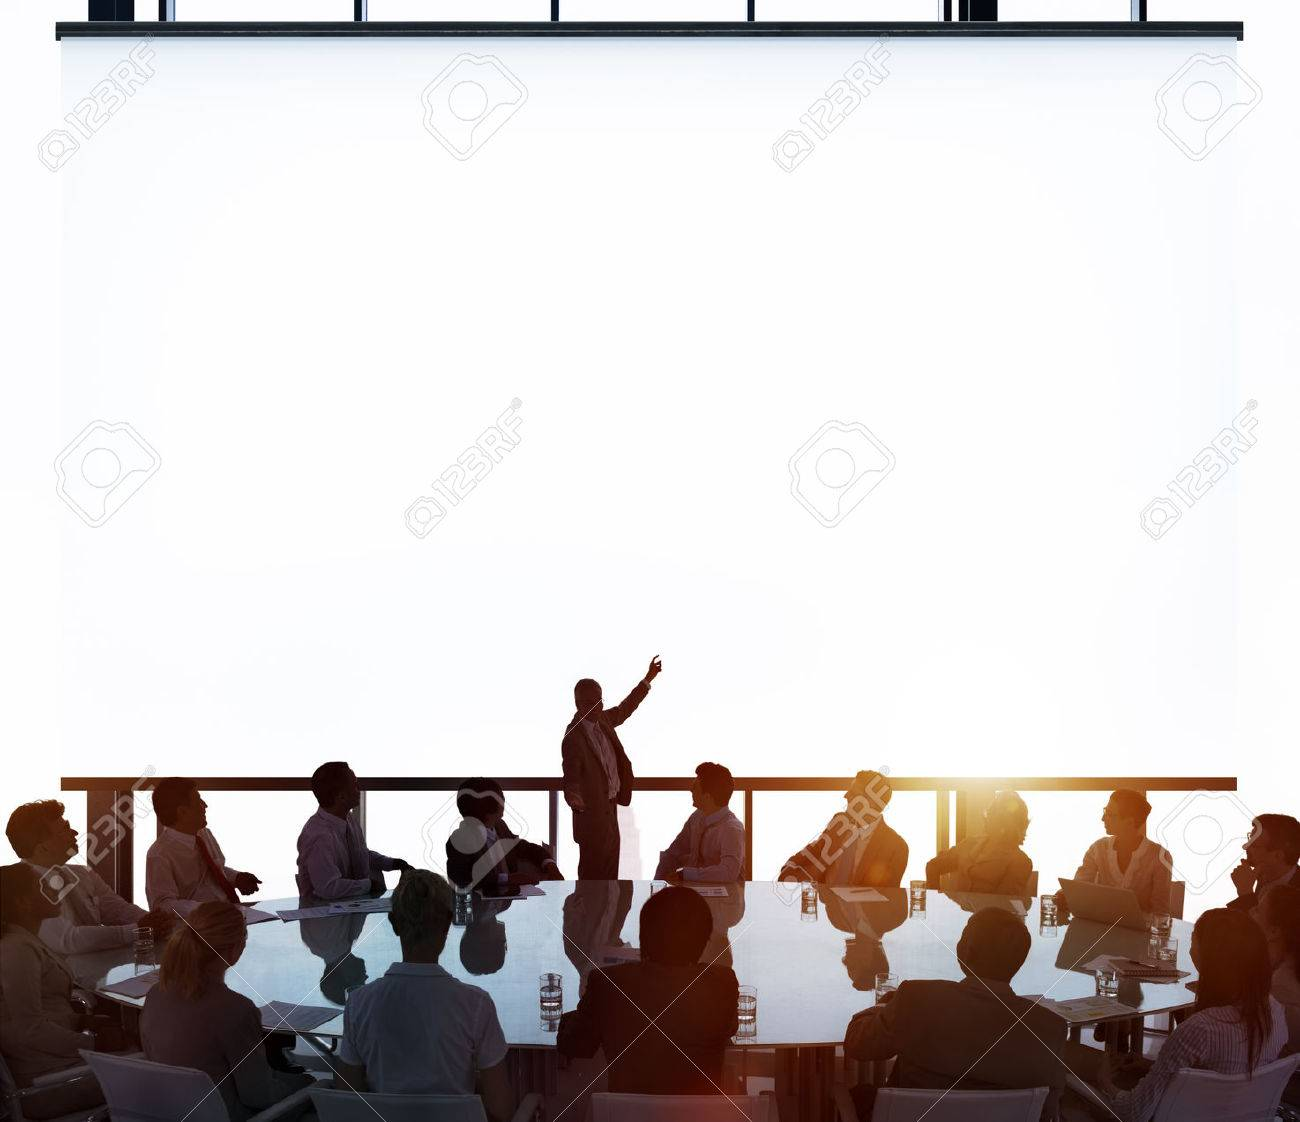 Meeting Room Business Meeting Leadership COncept Stock Photo - 41342905